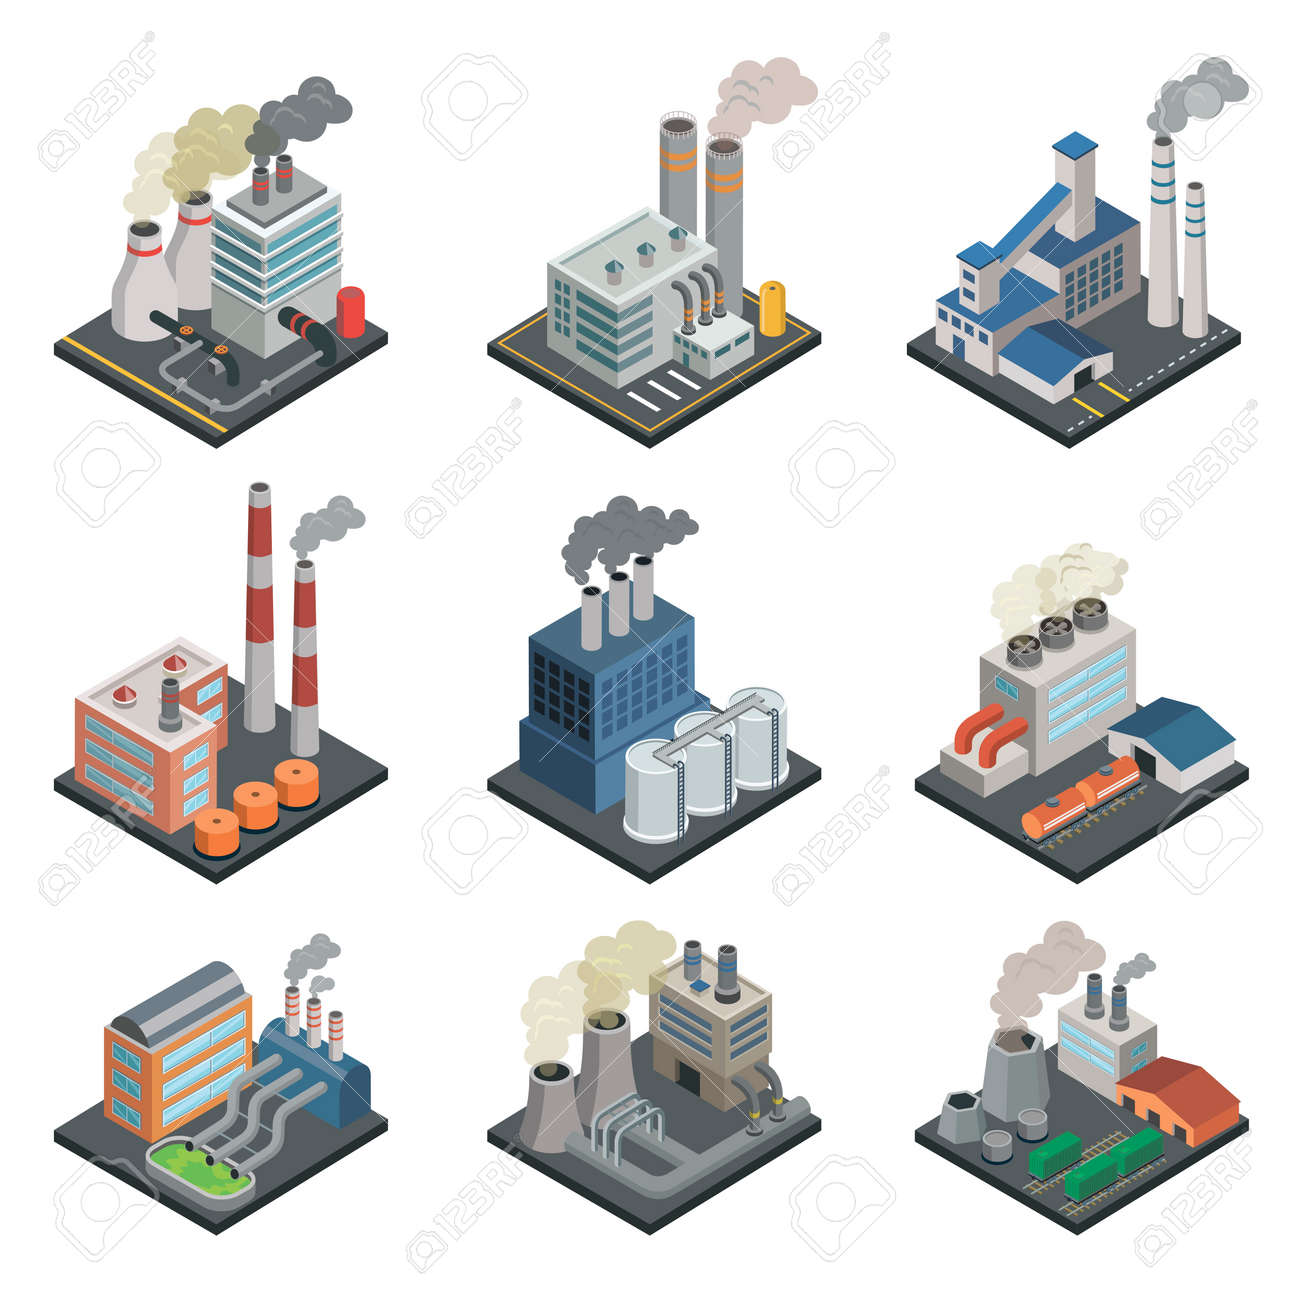 Industrial building factory isometric 3D elements - 113332854